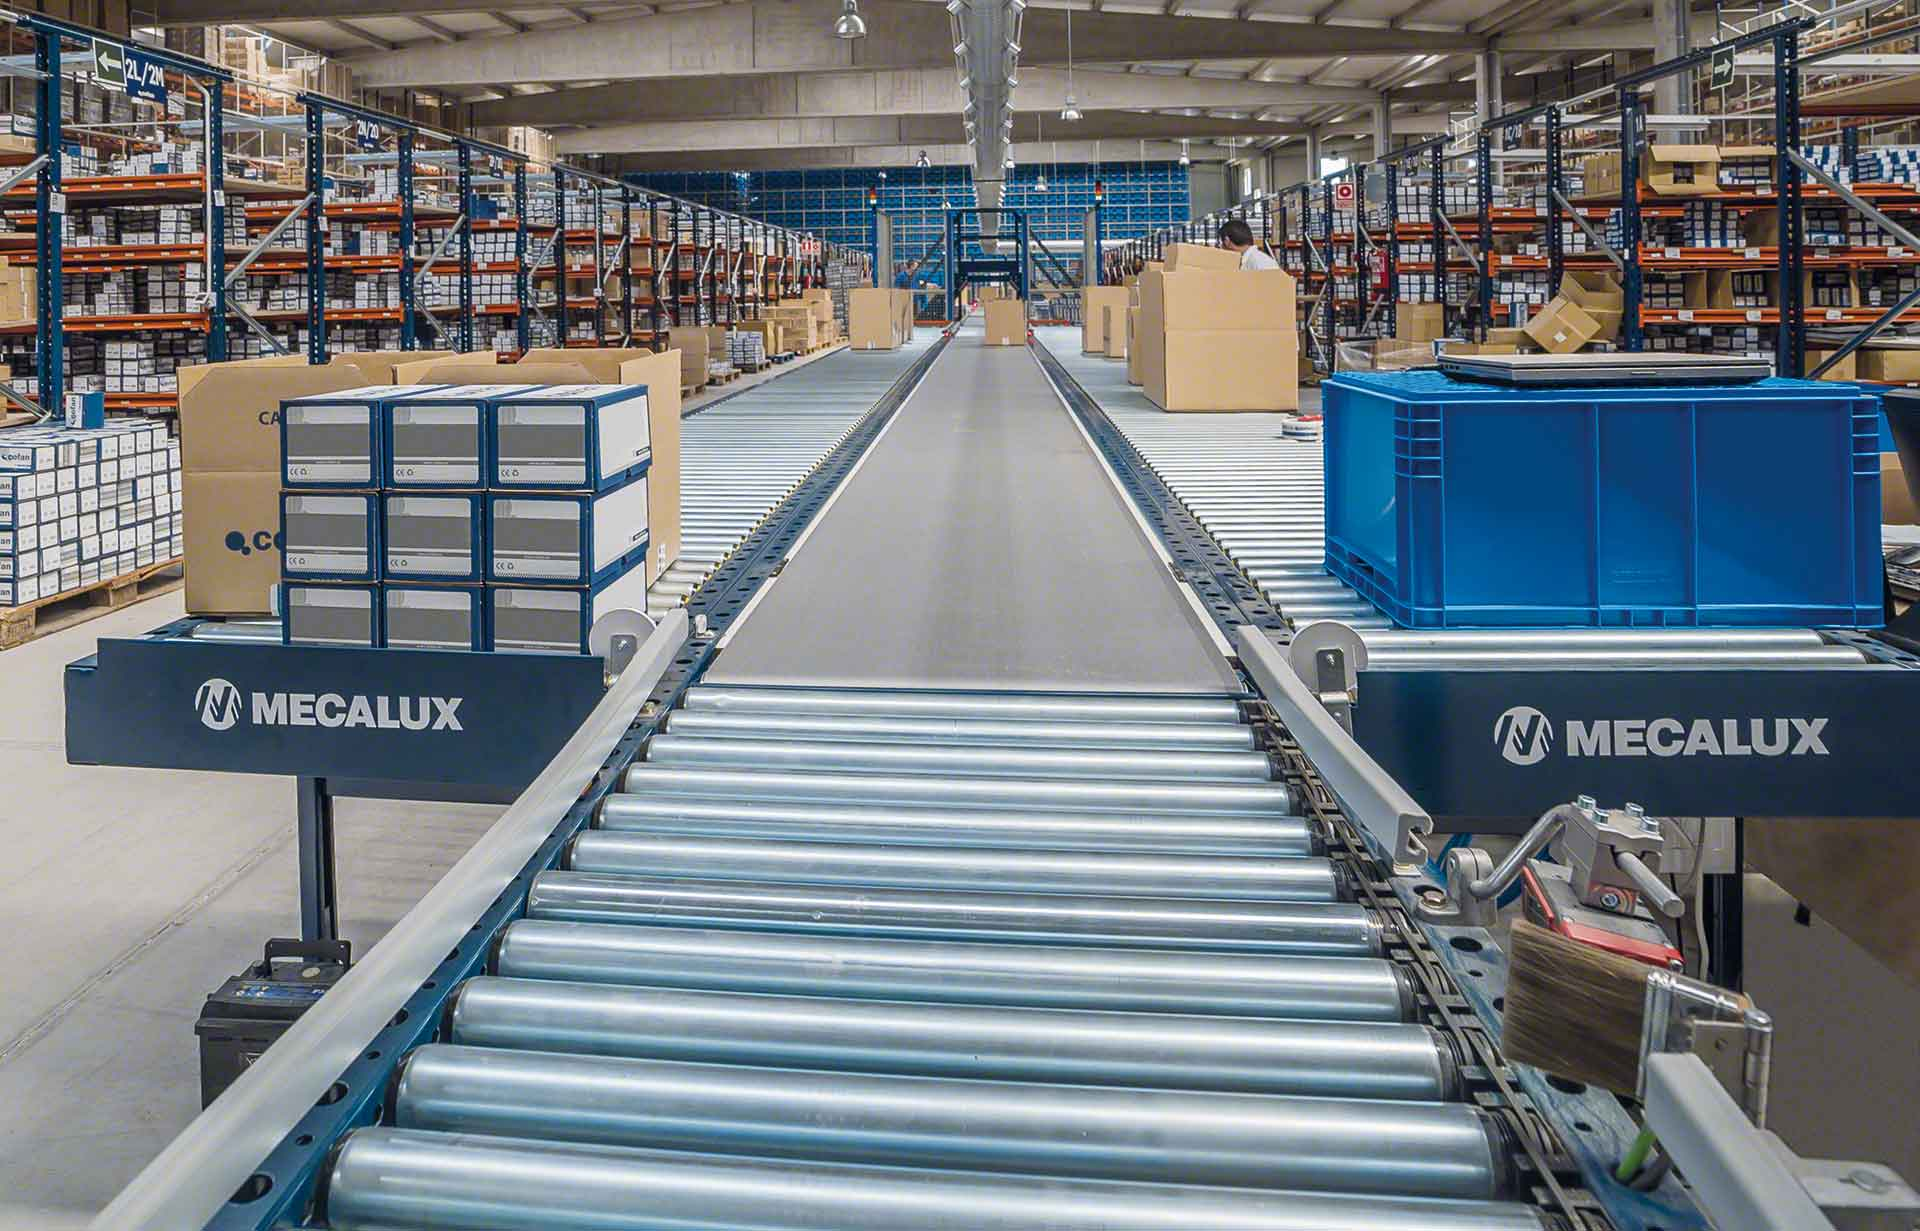 Roller conveyor integrated as part of the warehouse operations